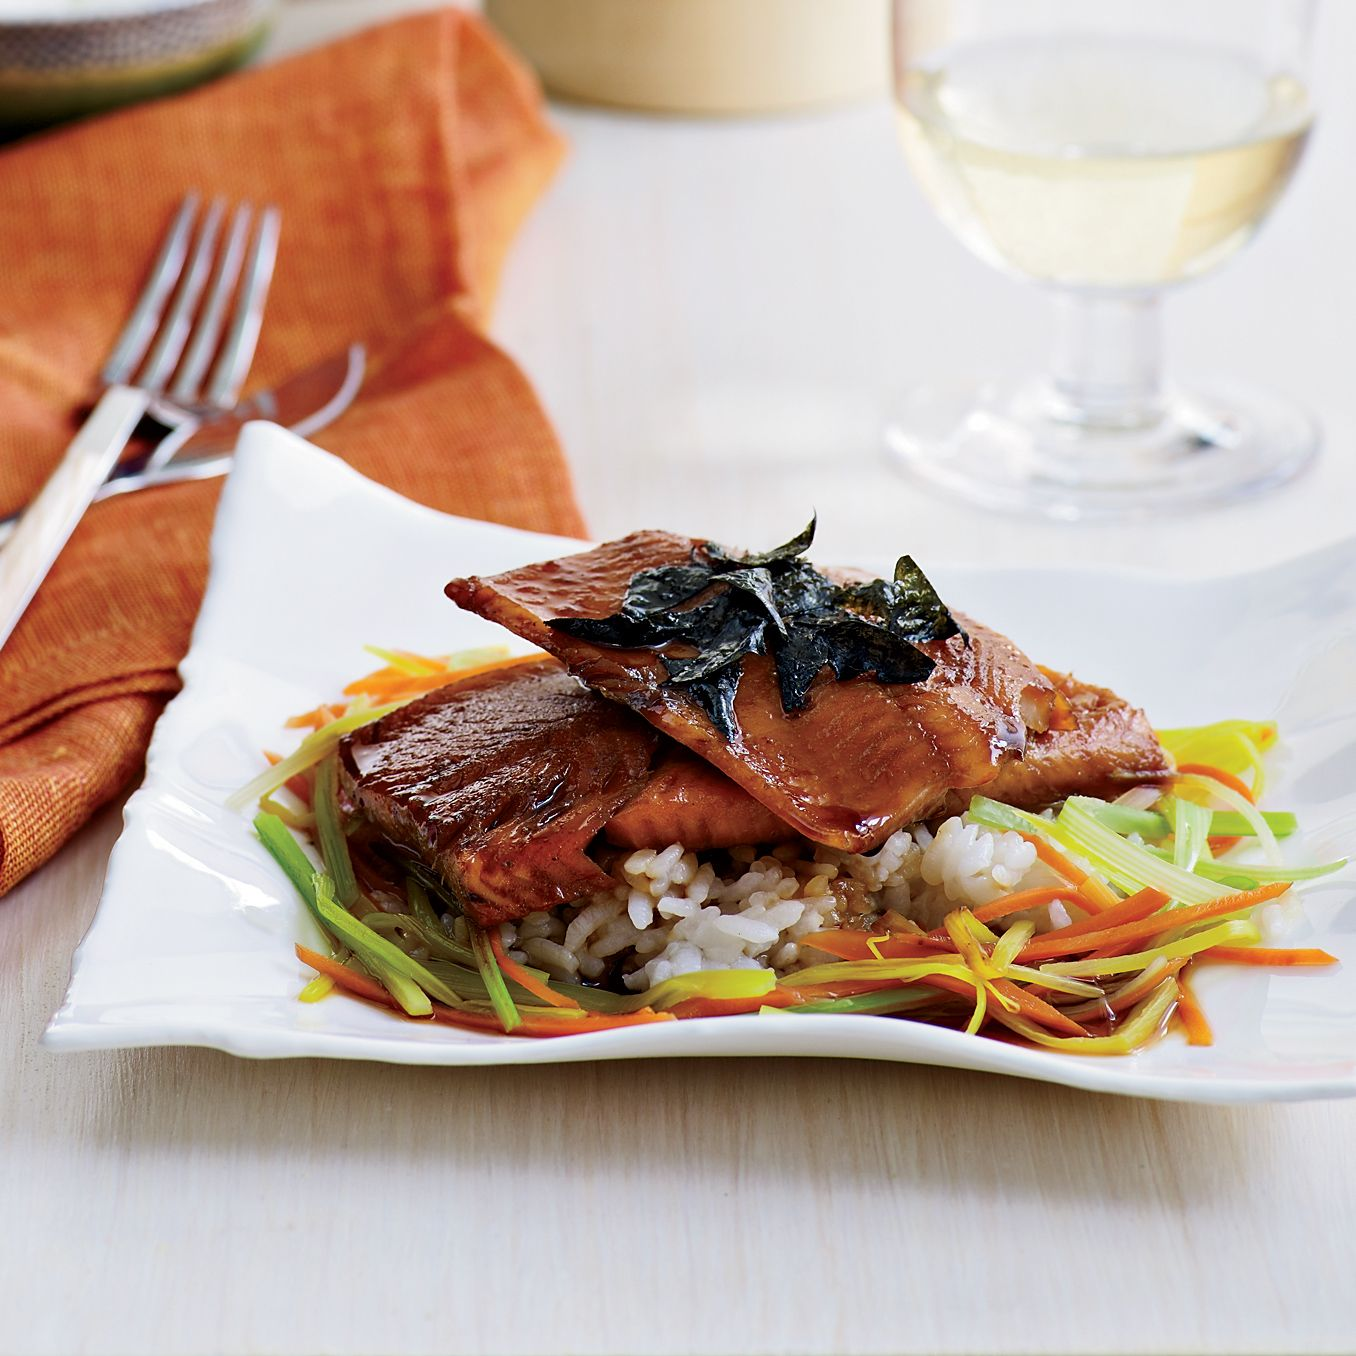 Trout salty: recipe